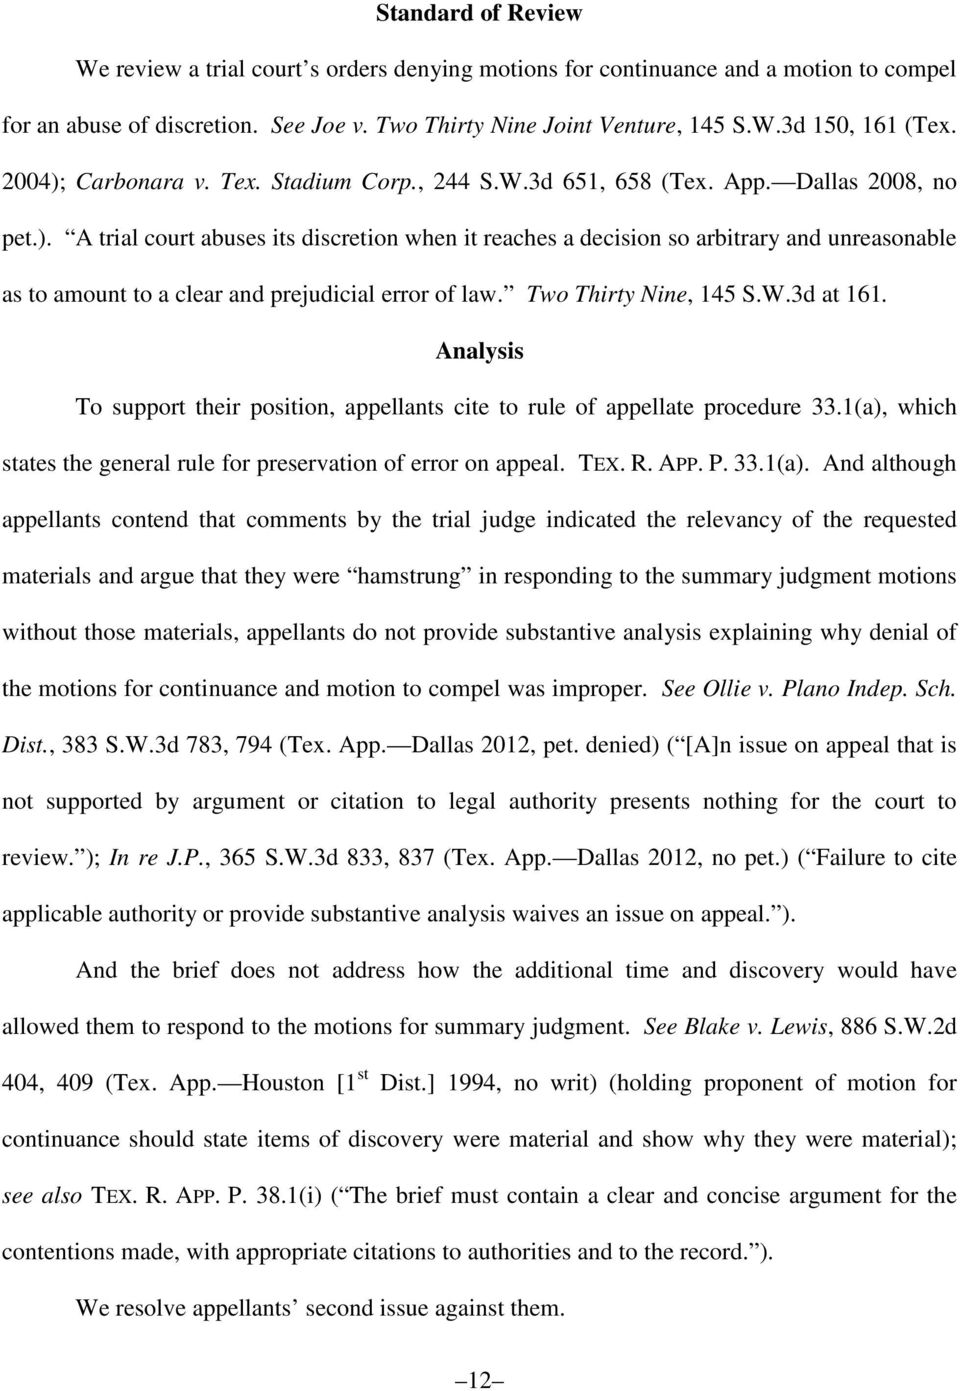 Two Thirty Nine, 145 S.W.3d at 161. Analysis To support their position, appellants cite to rule of appellate procedure 33.1(a), which states the general rule for preservation of error on appeal. TEX.